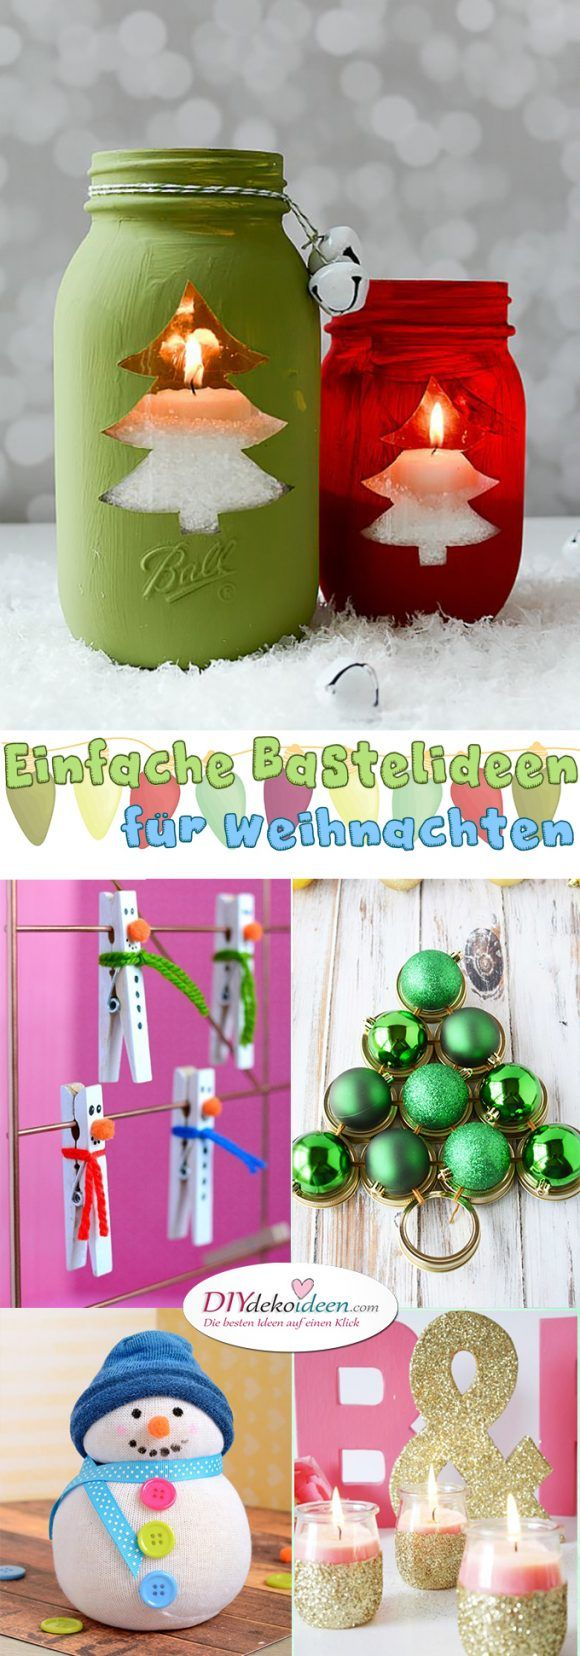 Photo of Simple craft ideas for Christmas that bring joy